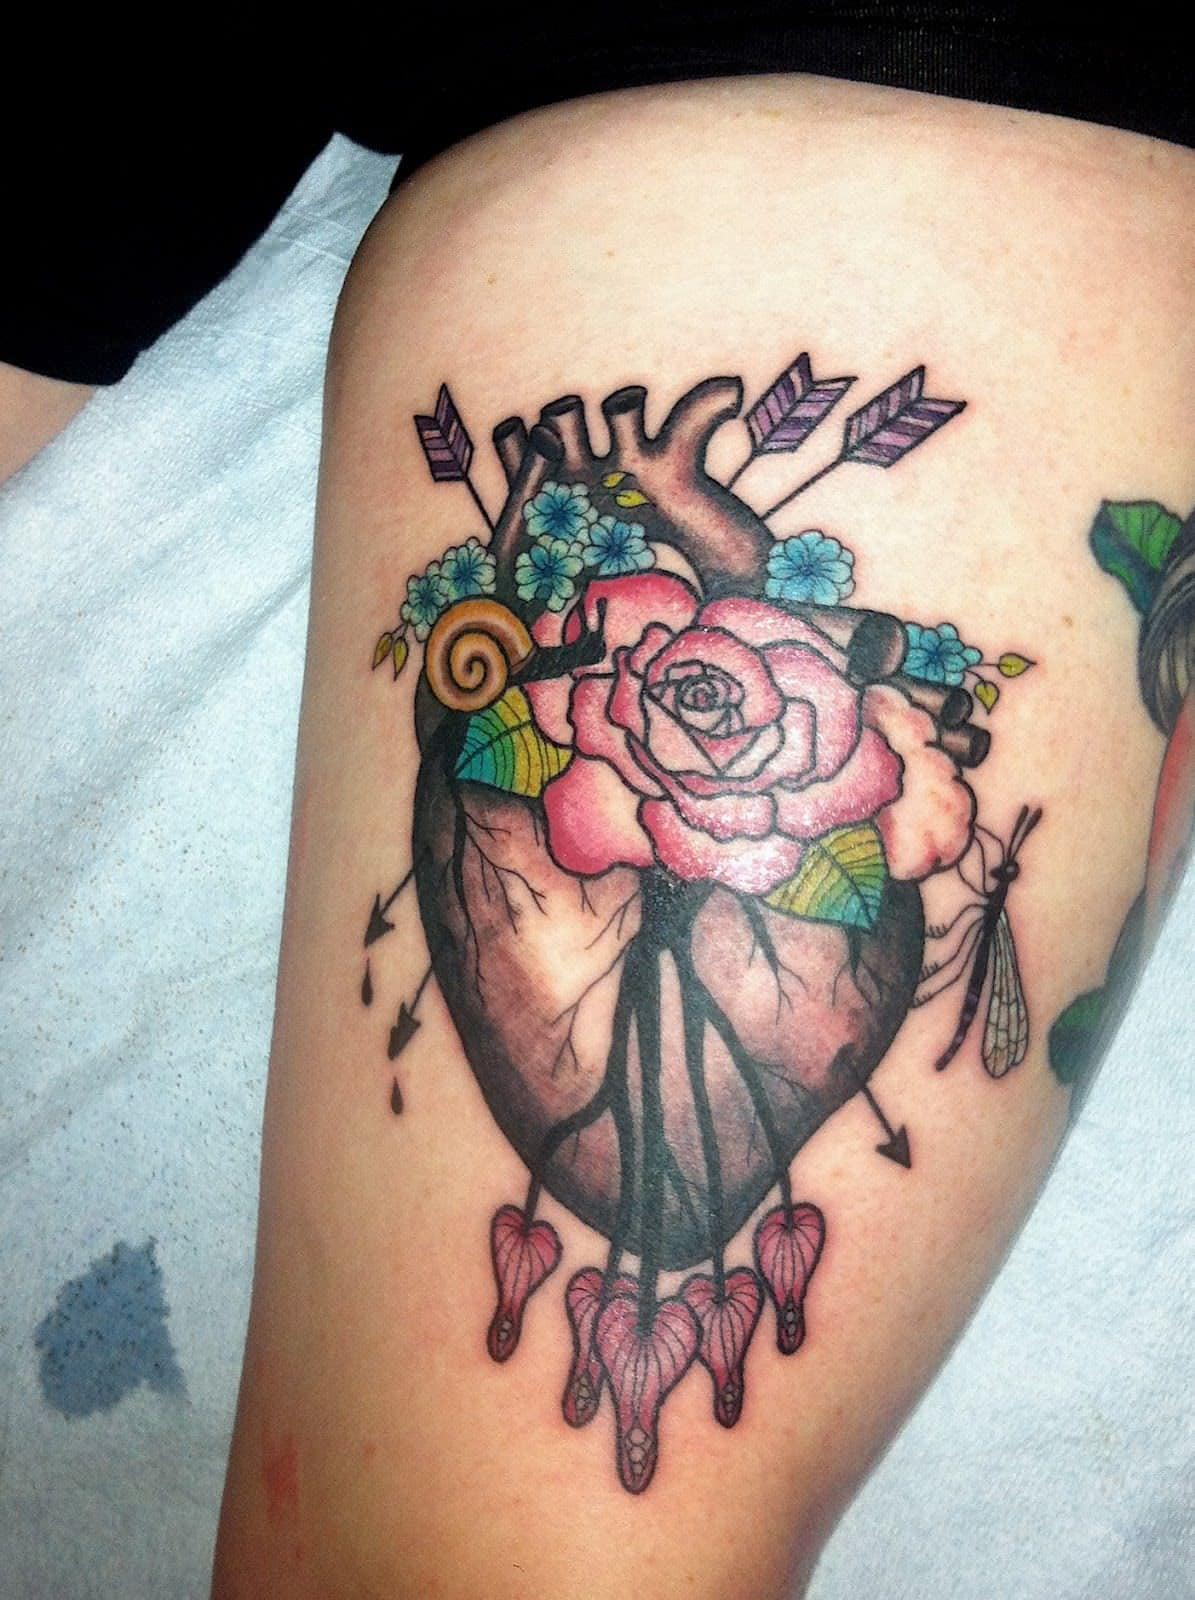 Flowered Heart Tattoo